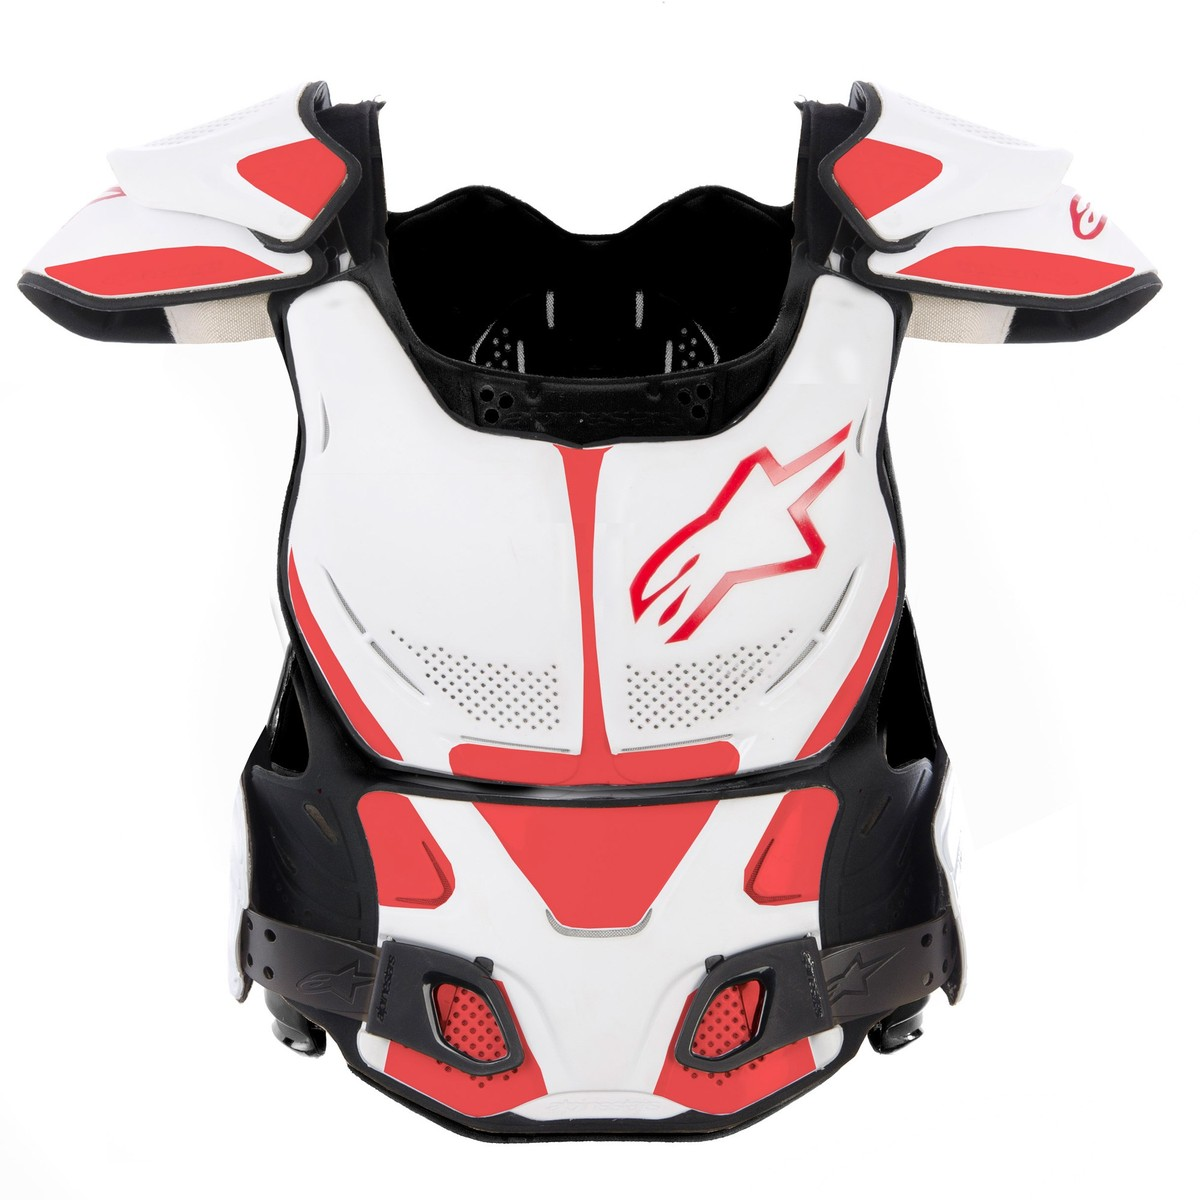 Alpinestars A-8 Chest Protection Vest for BNS панцирь, белый